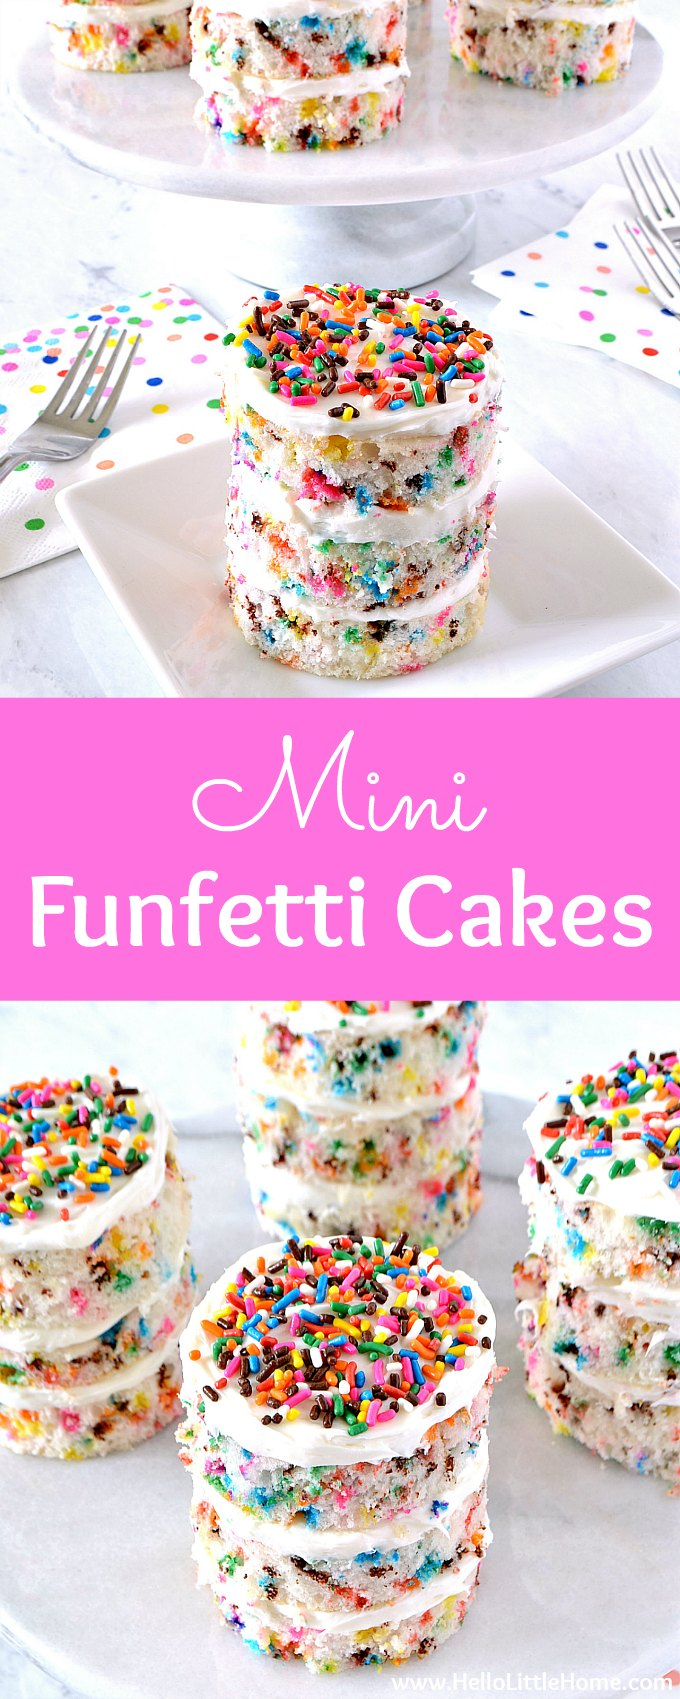 Learn how to make Mini Funfetti Cakes! These adorable individual layer cakes are covered with rainbow sprinkles. This easy Sprinkle cake tutorial breaks down all the steps for this semi-homemade Mini Cake recipe. These simple, delicious Funfetti Cakes are the perfect treat for a birthday party, shower, or any festive event! | Hello Little Home #minicake #cakedecorating #sprinkles #funfetti #funfetticake #minifunfetticake #sprinklescake #birthdaycakes #cakerecipe #birthdayparty